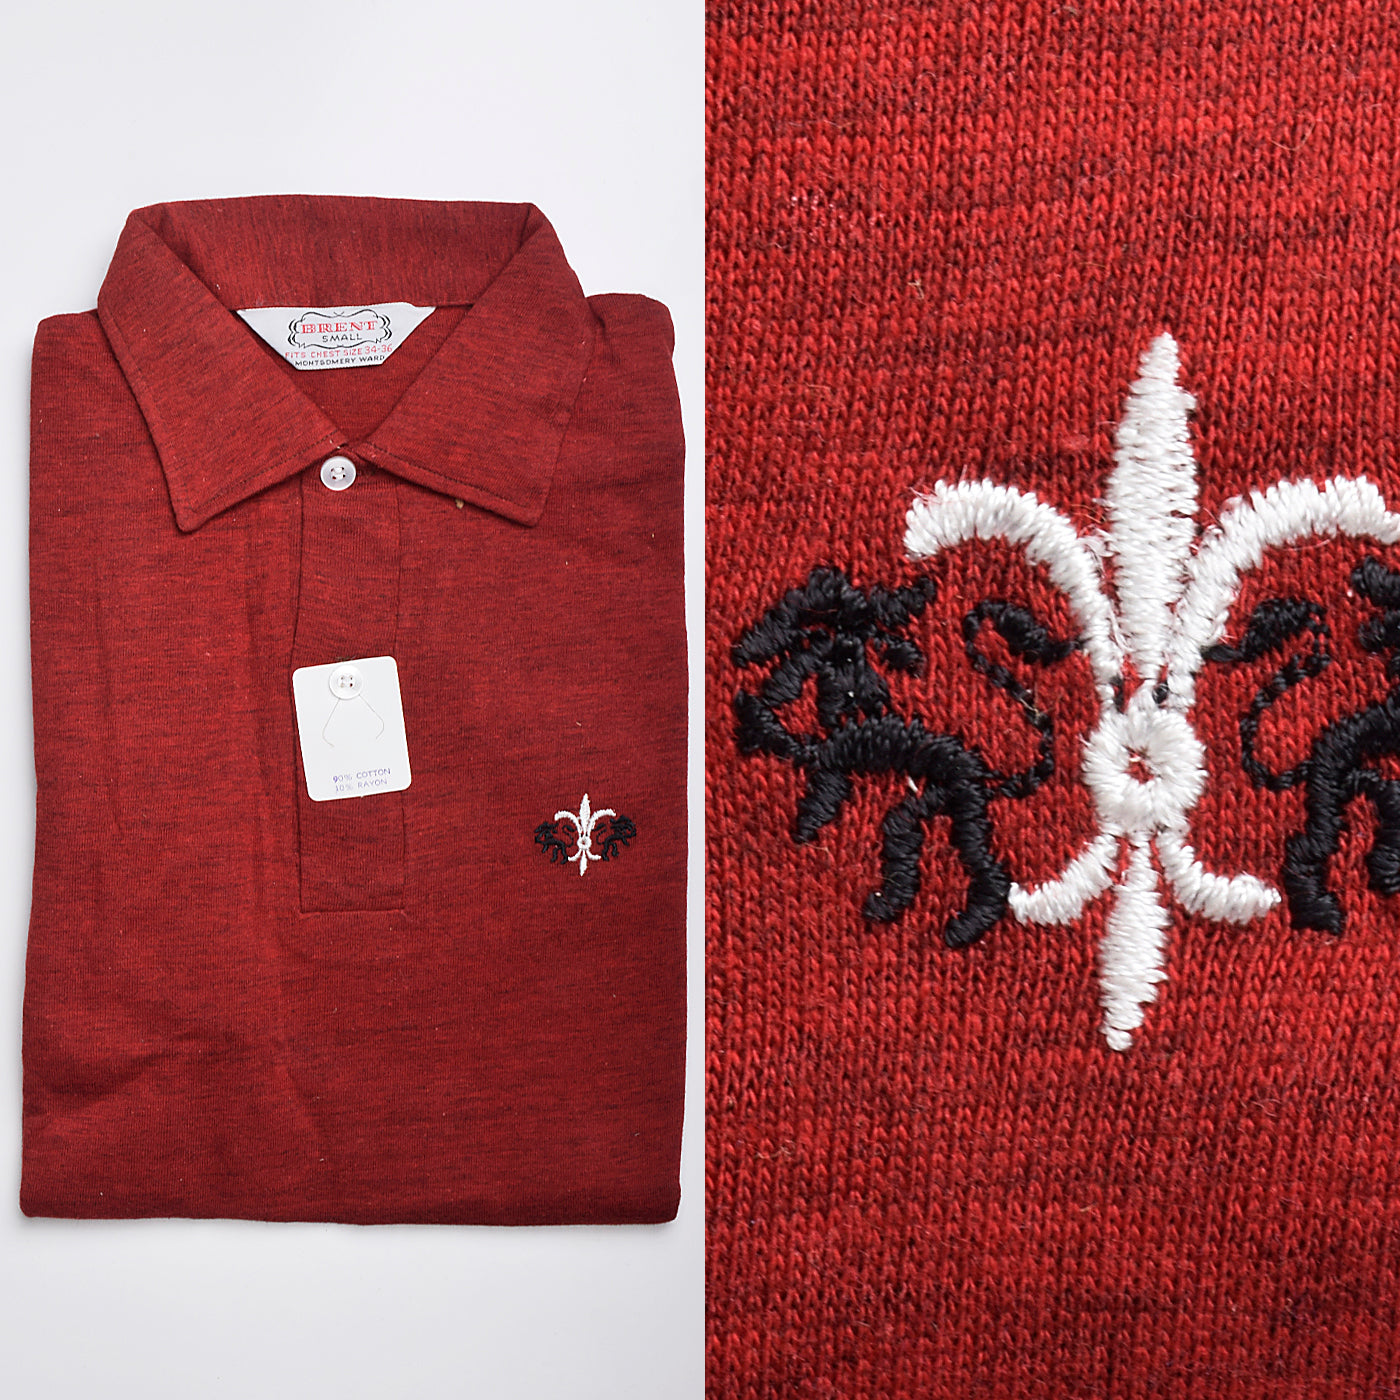 1950s Mens Deadstock Red Knit Shirt with Embroidered Chest Detail